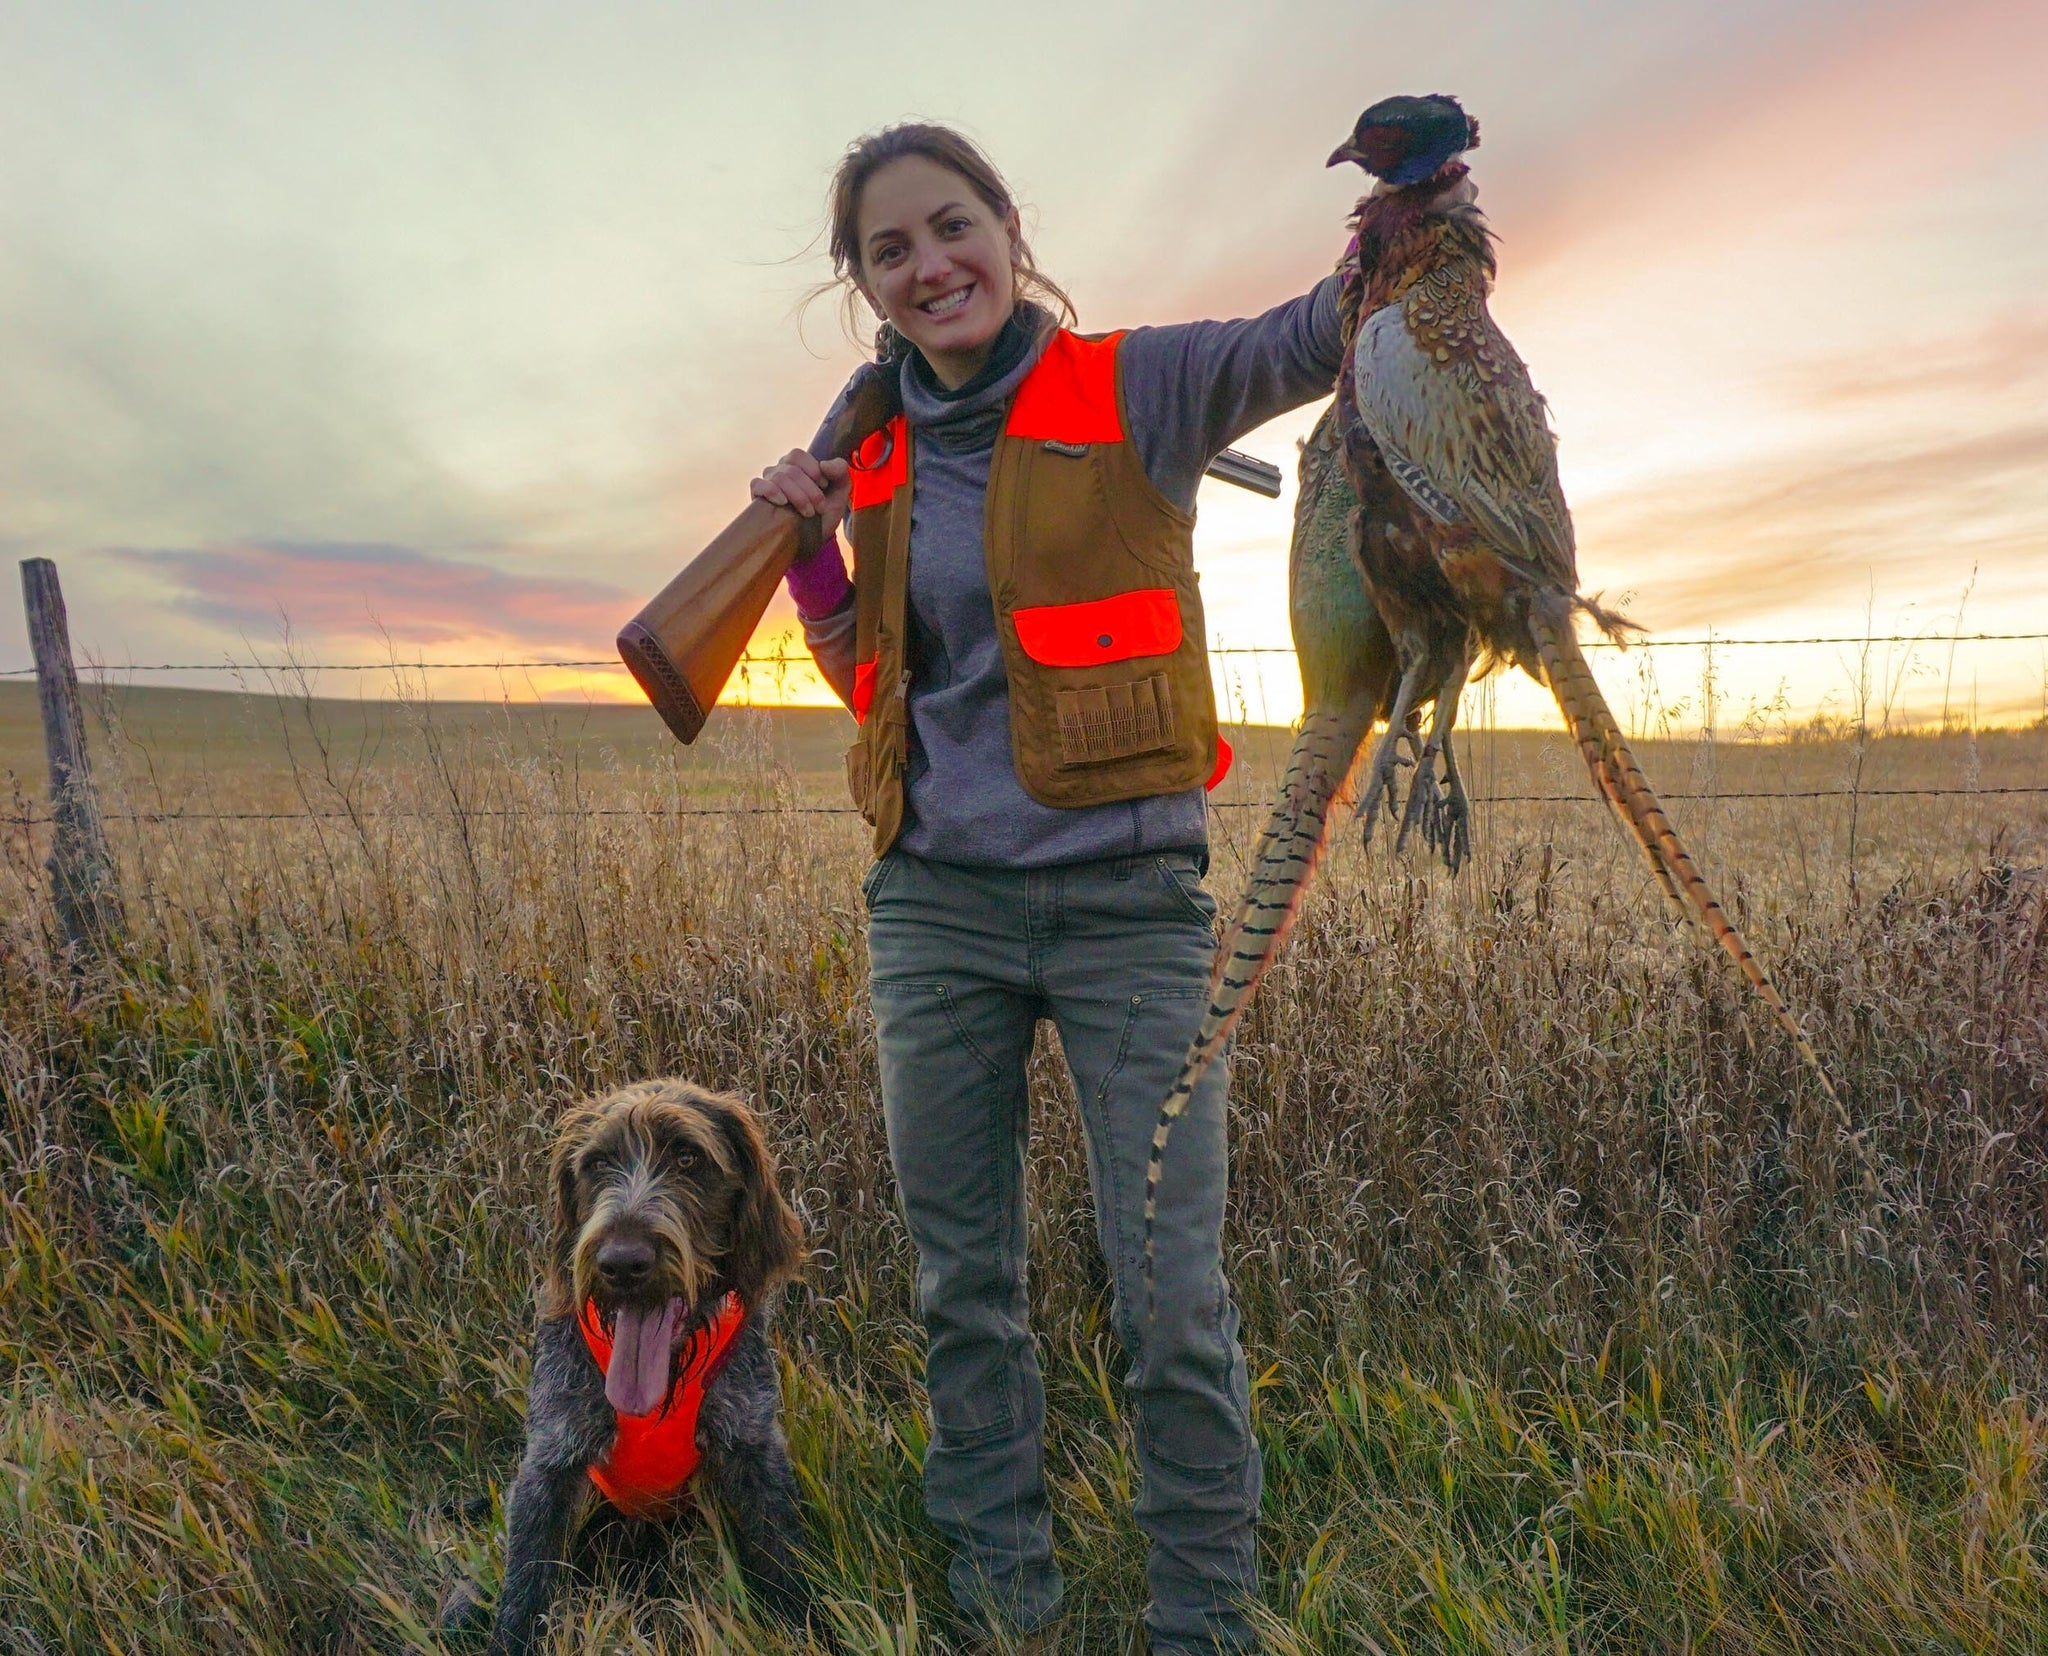 Q&A: Hunter & Wild Game Chef, Danielle, from Wild & Whole